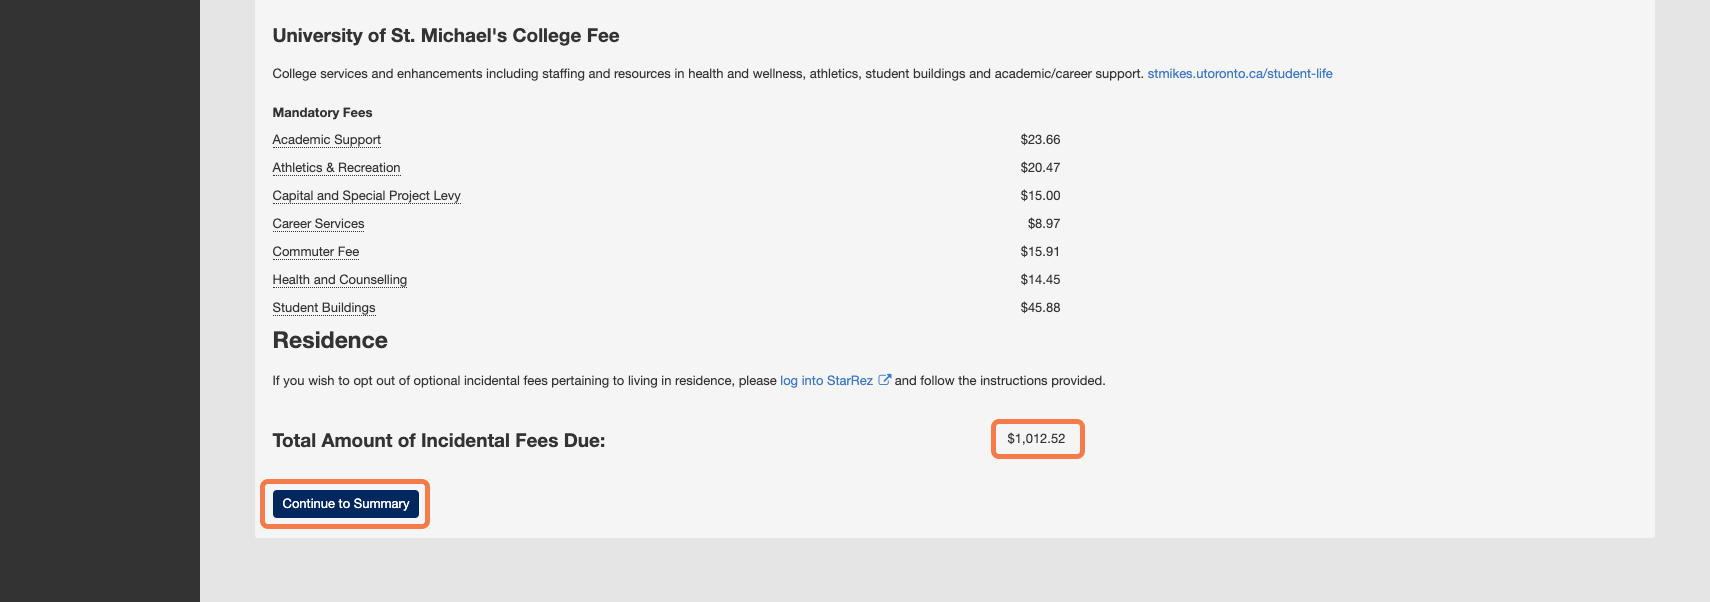 The bottom portion of the fee selection form which contains the total fees due